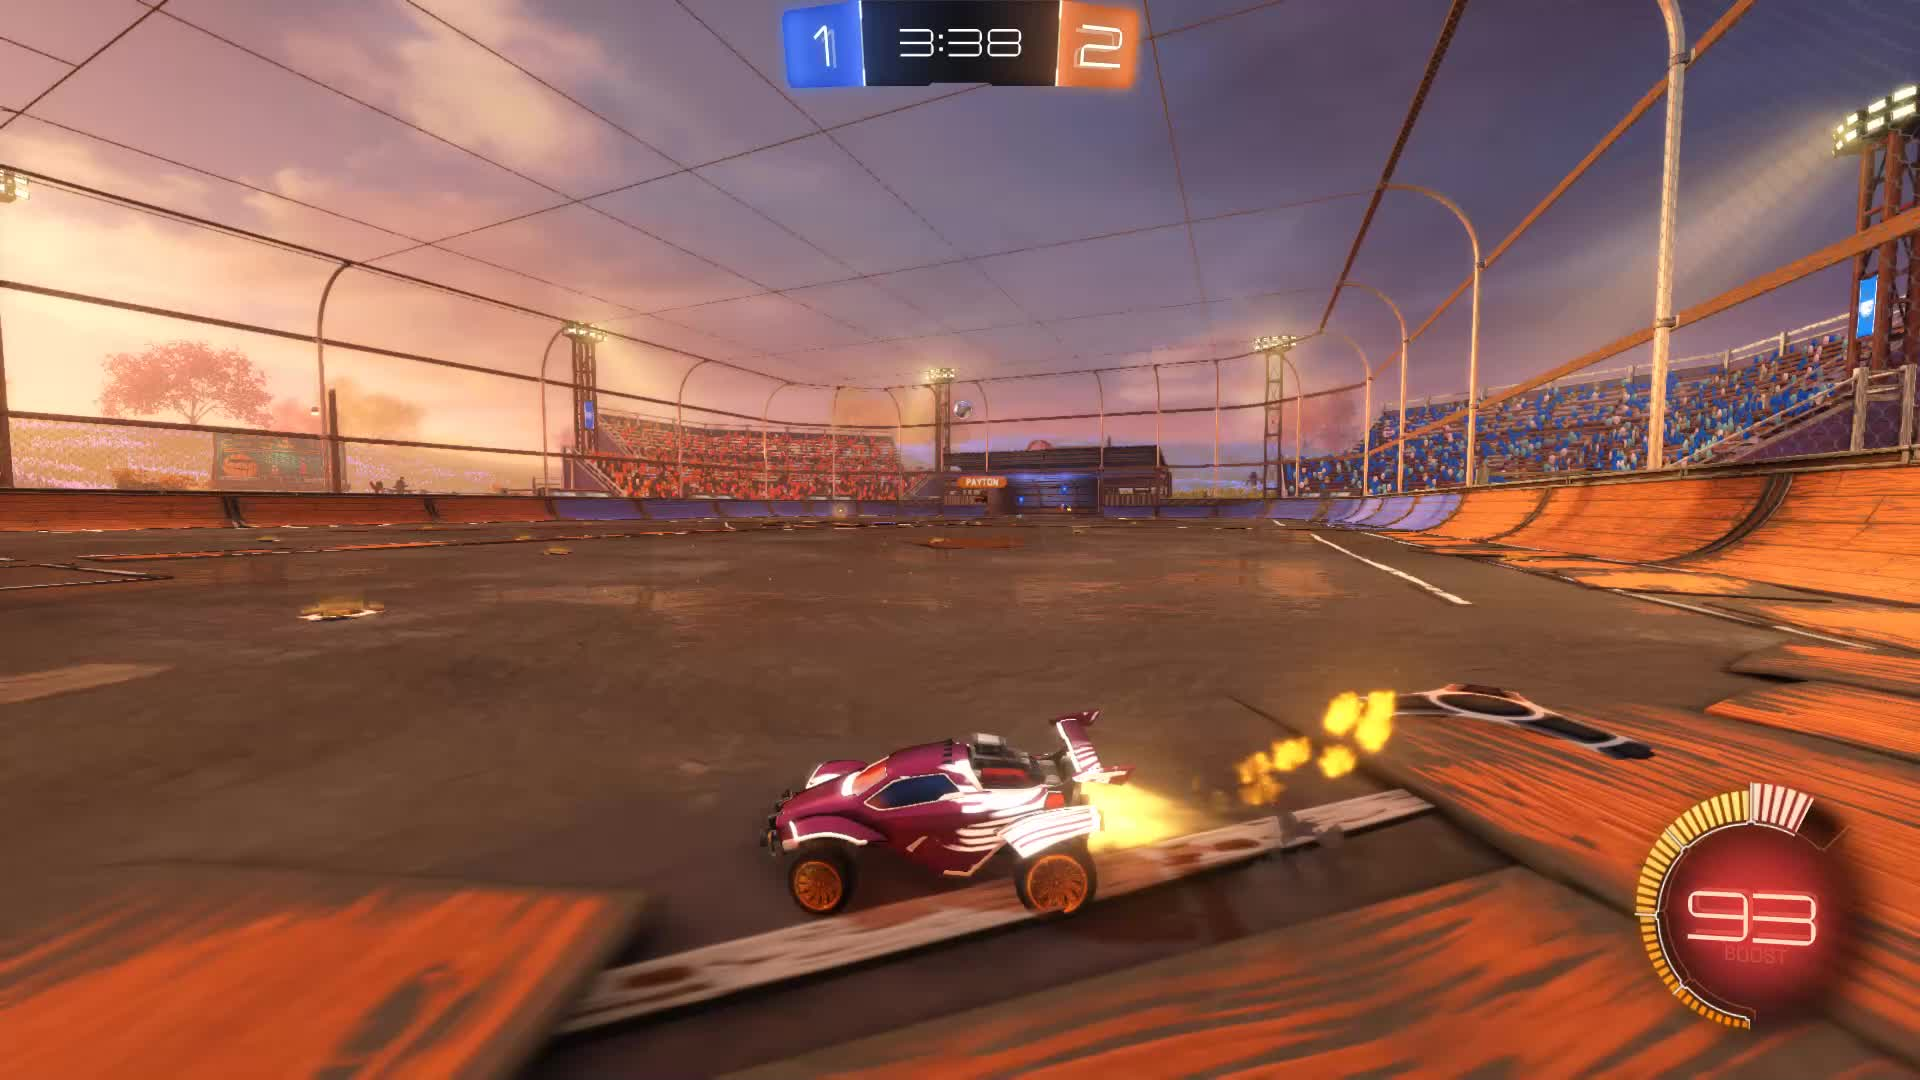 Gif Your Game, GifYourGame, Goal, Rocket League, RocketLeague, Scooby-Doo, Goal 4: Scooby-Doo GIFs